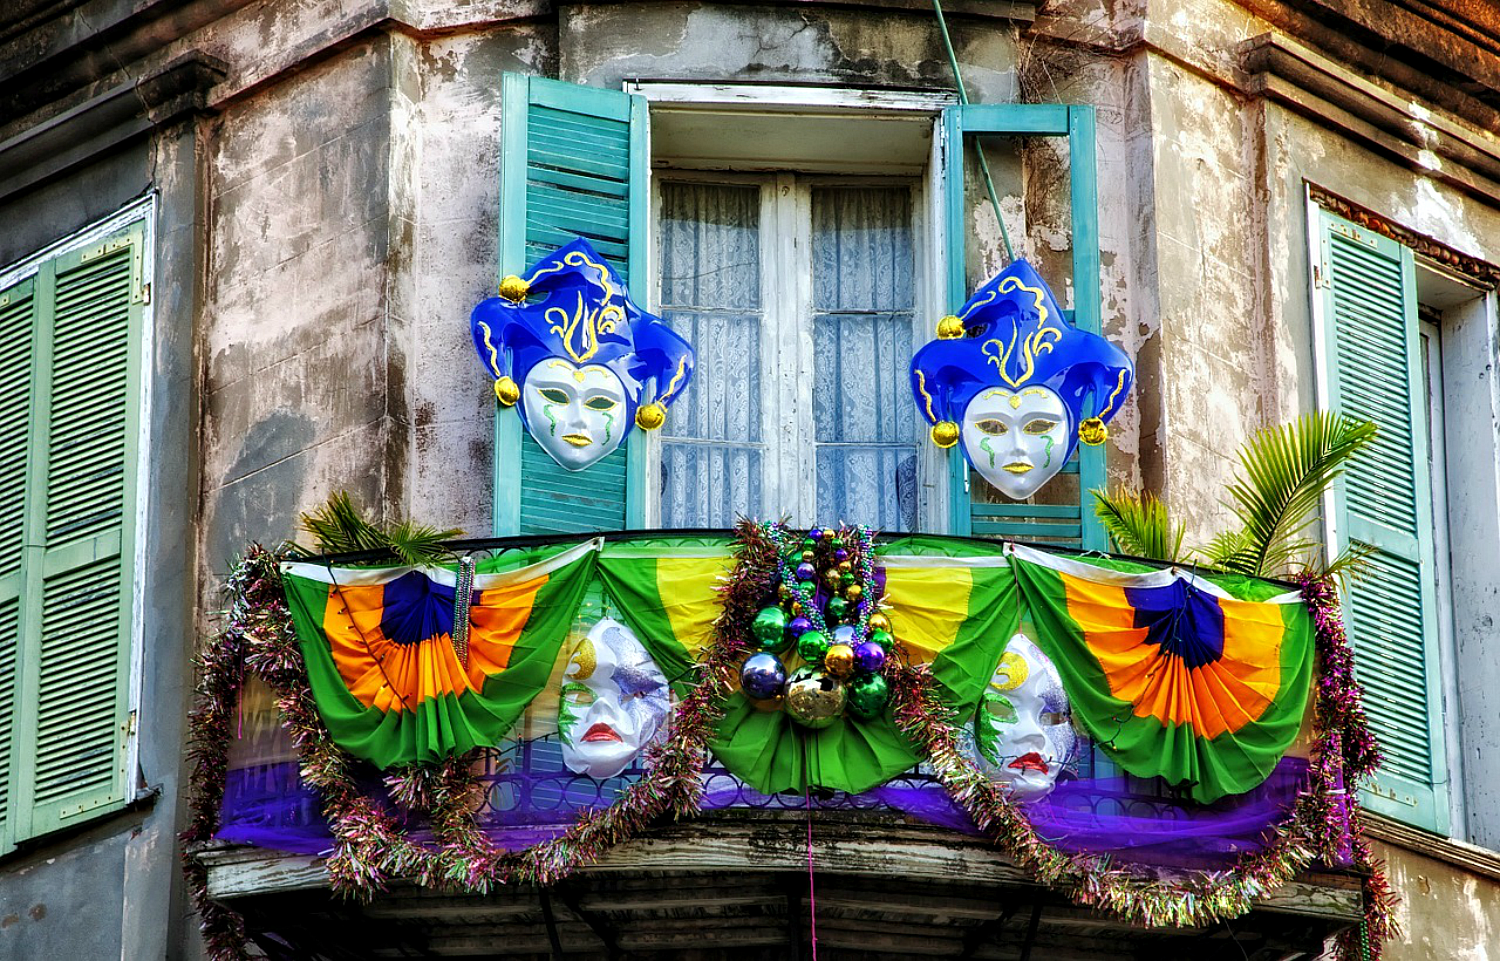 Best Free Things to Do in New Orleans